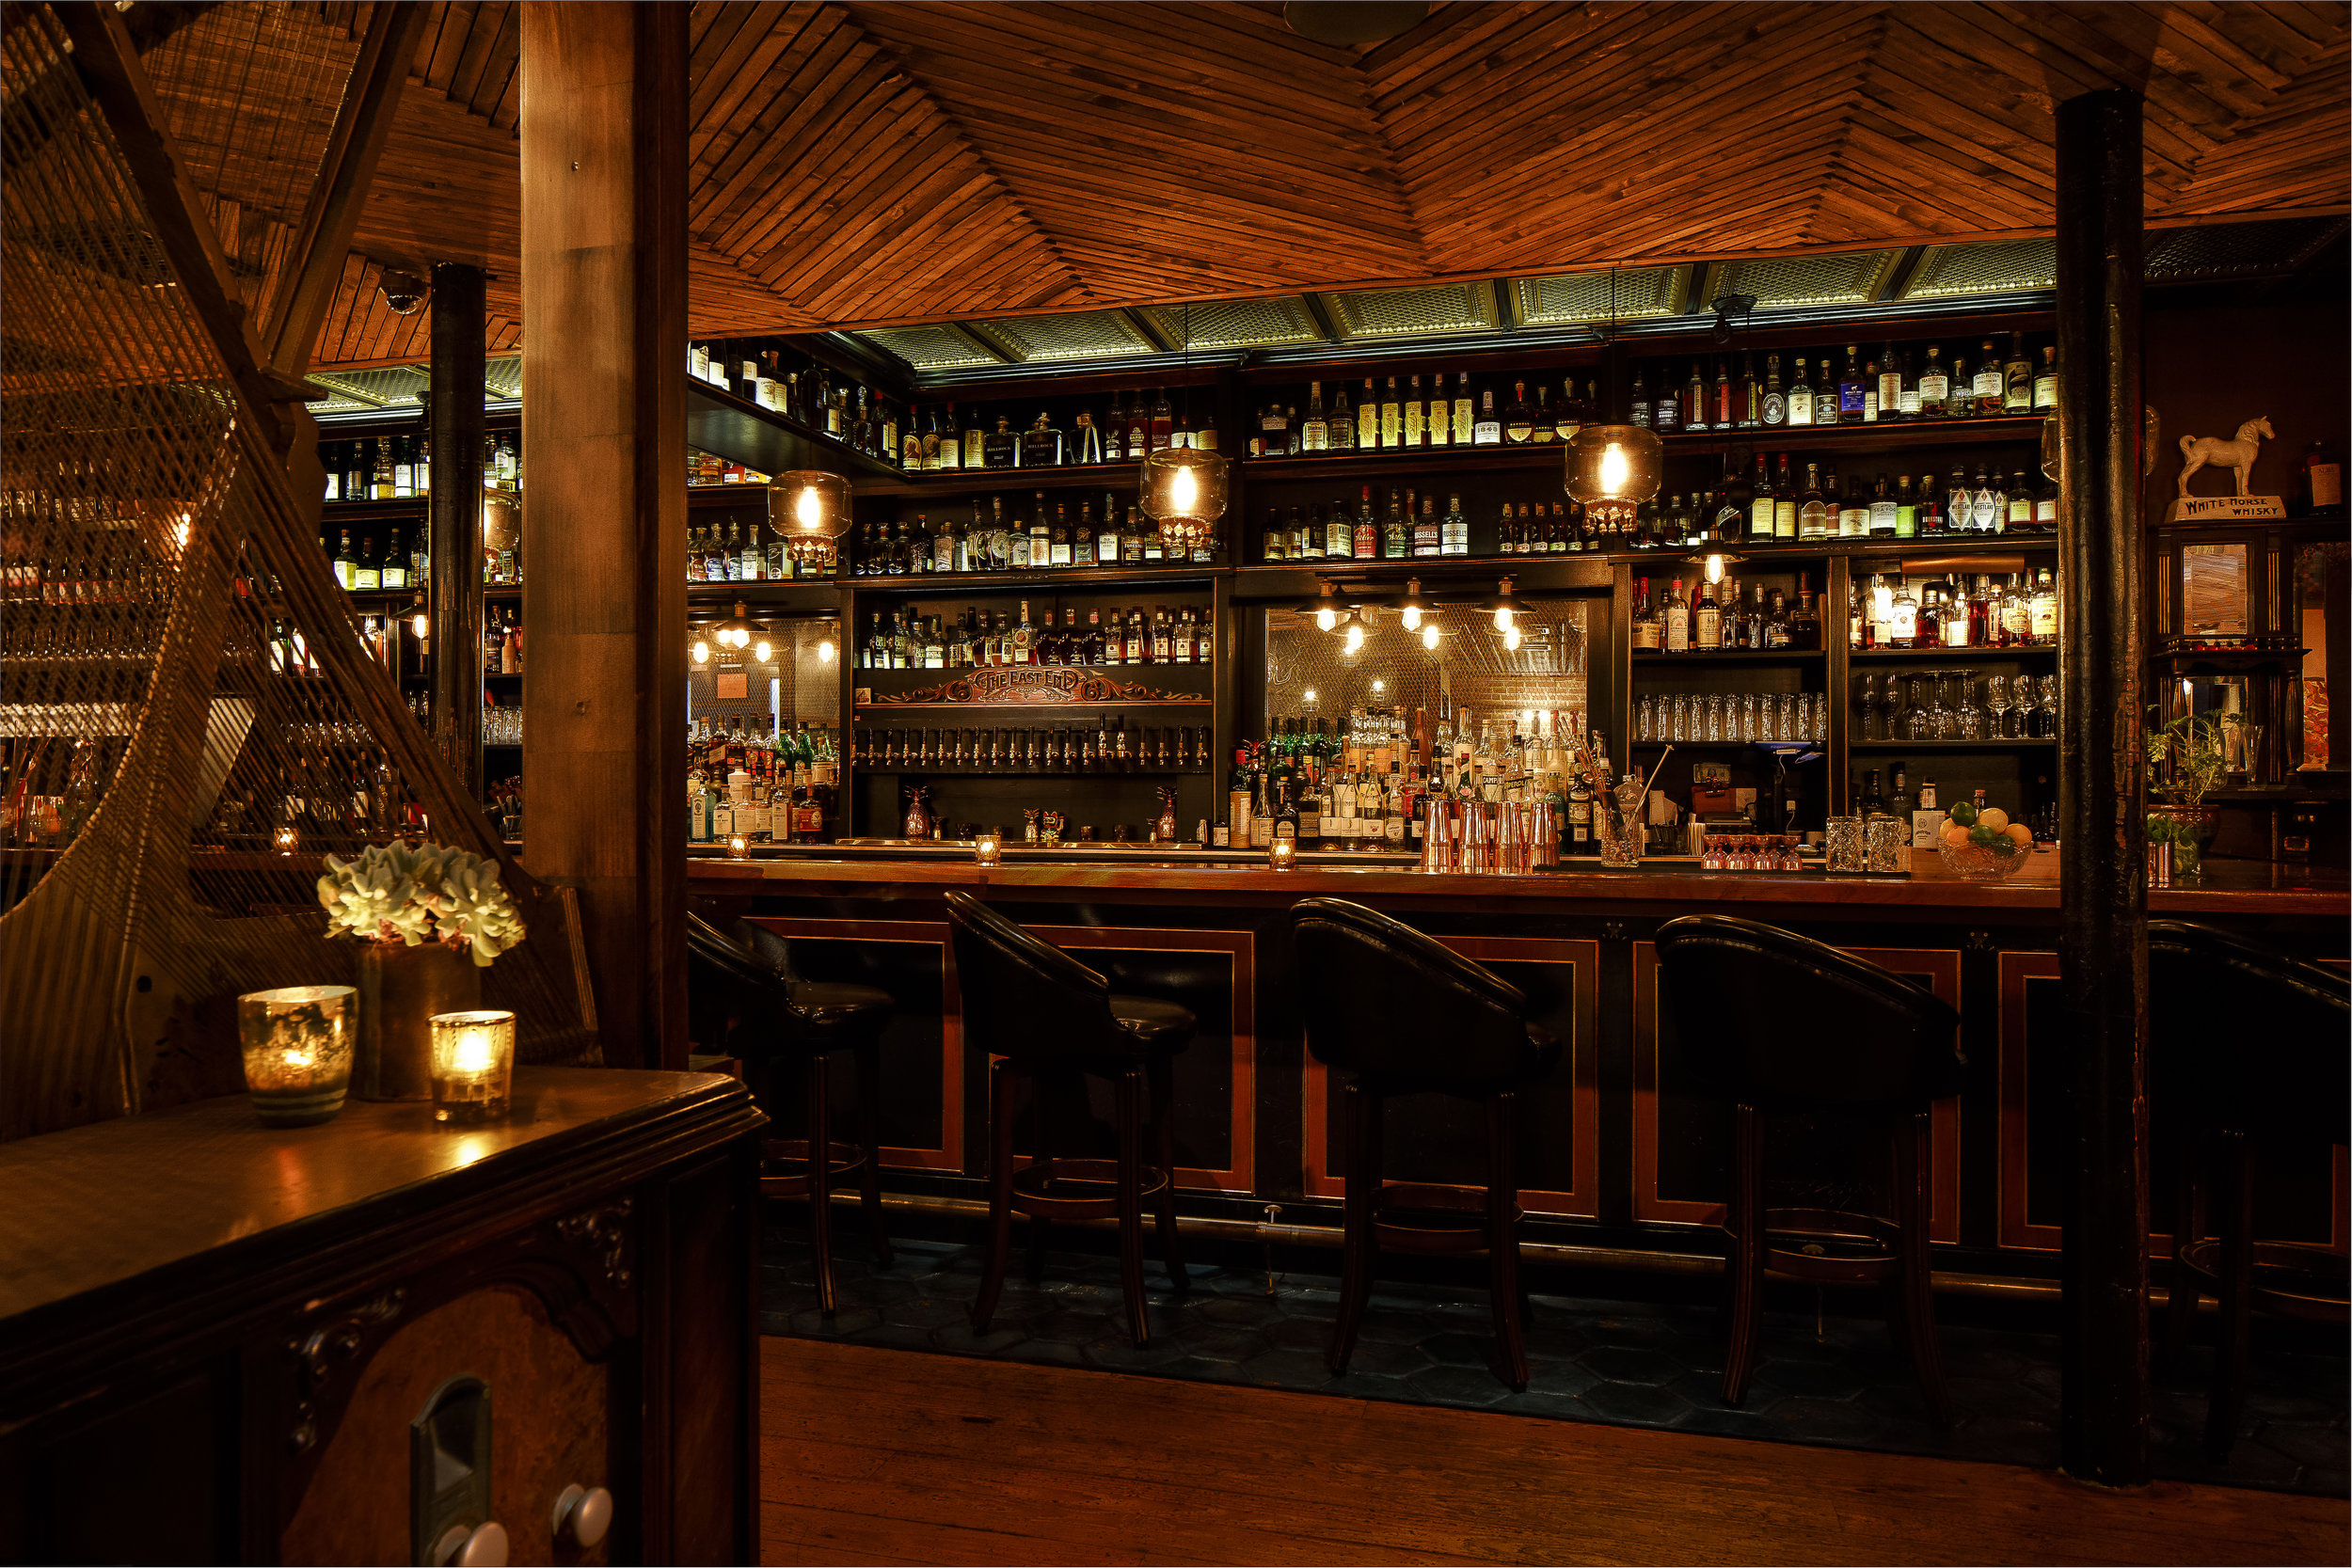 East End has Victorian whiskey bar ambiance with tin ceilings and rich velvet drapes, plus a bar highlighting an extensive spirits selection